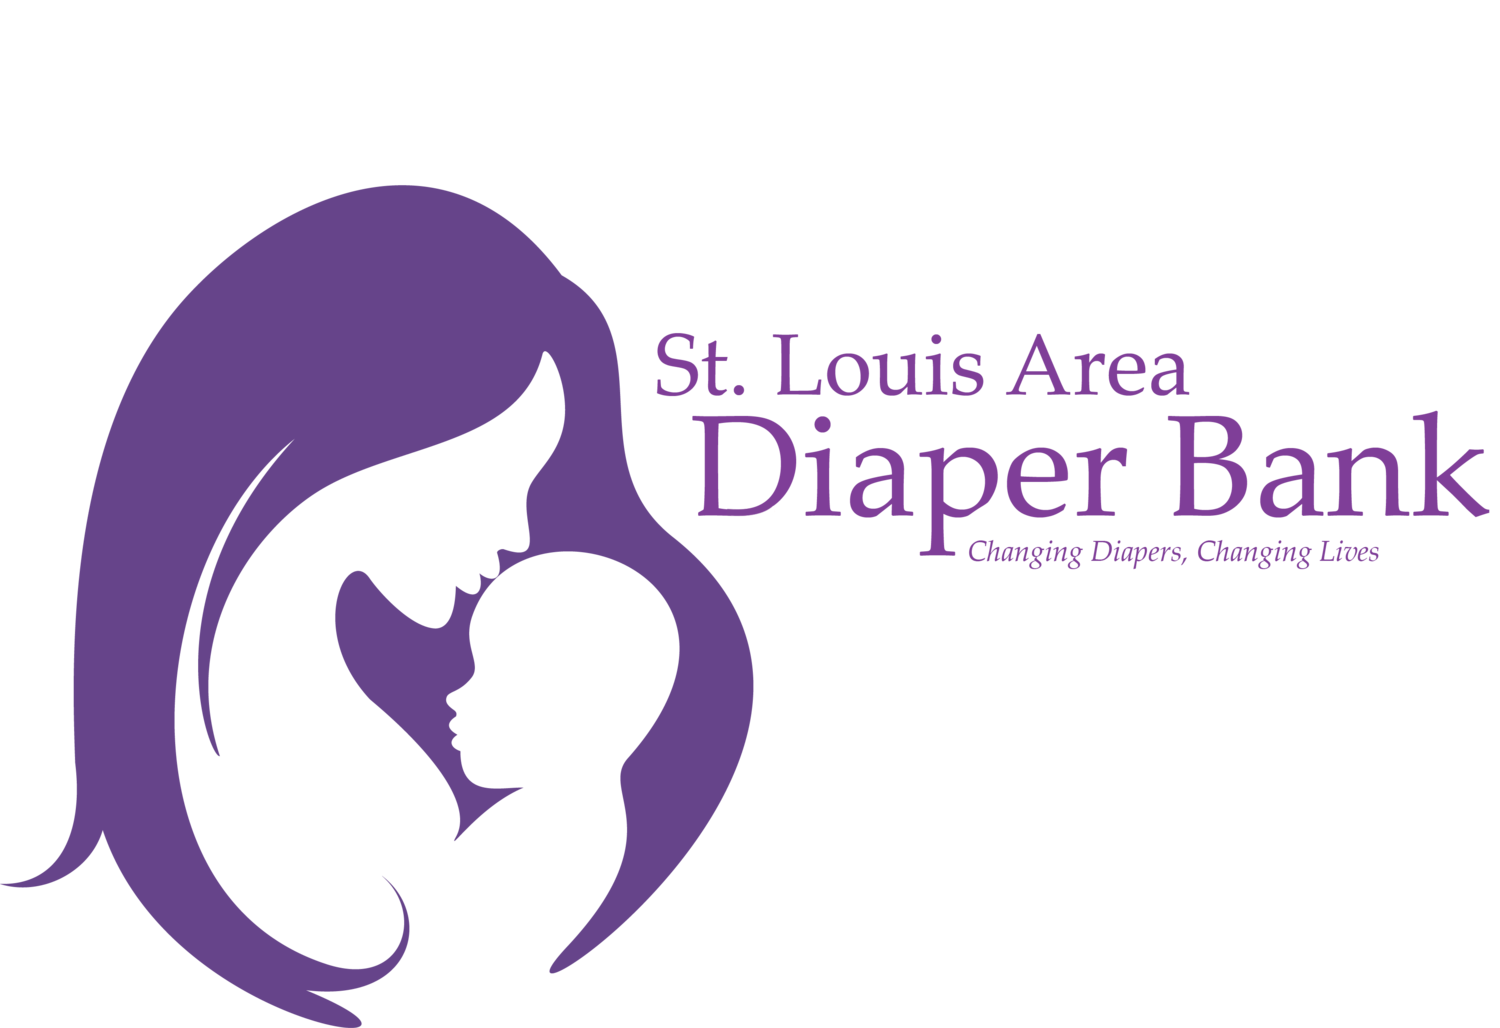 St. Louis Area Diaper Bank